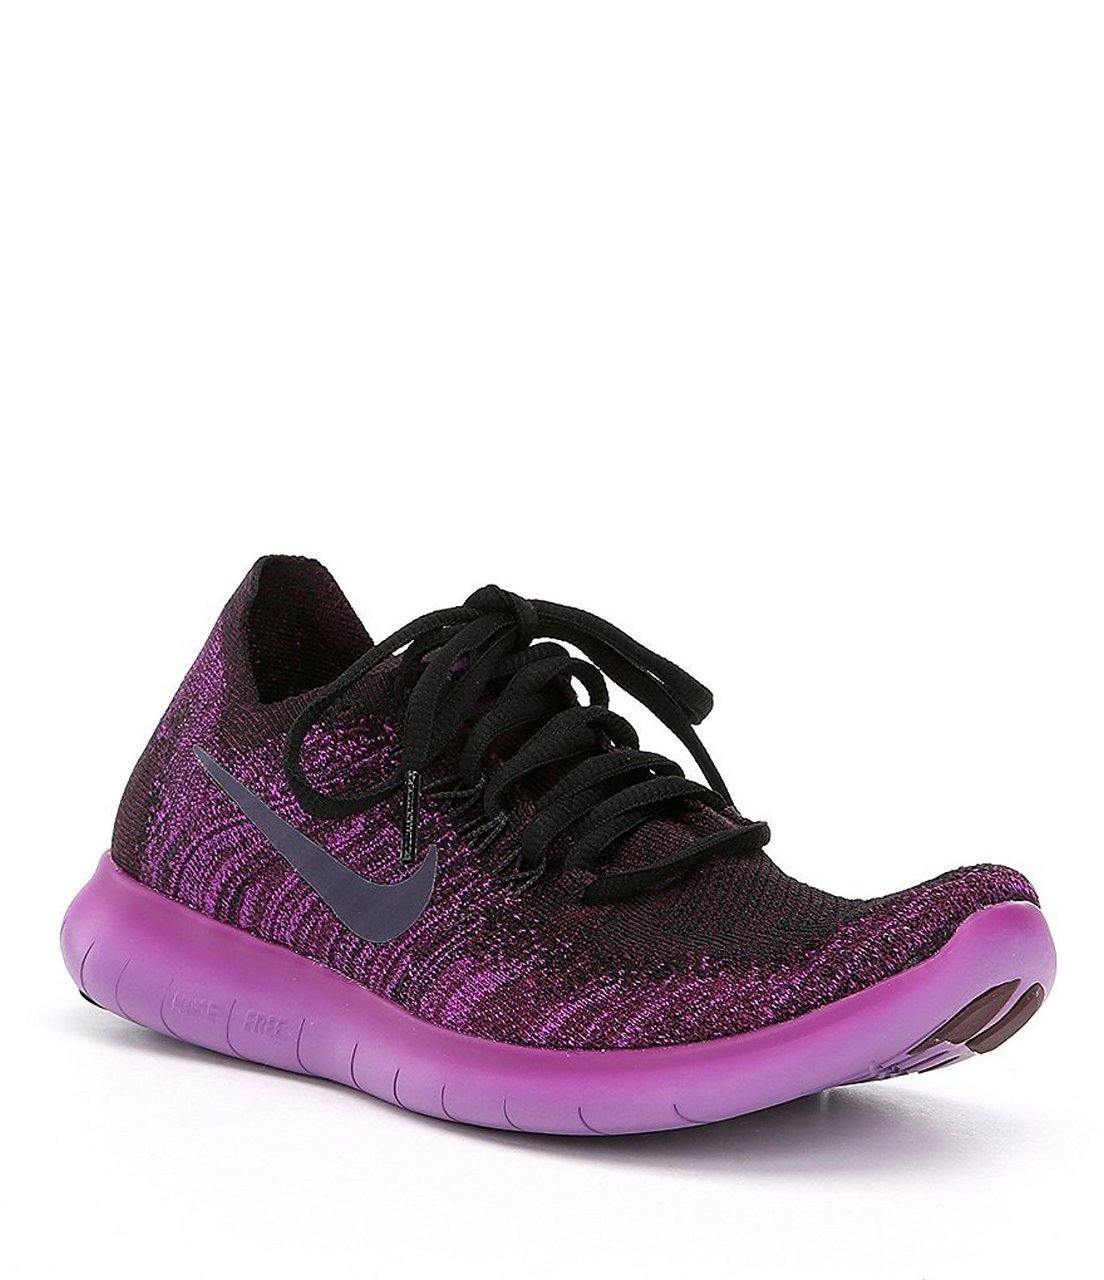 3a3c8f1612d7 Galleon - NIKE Women s Free Rn Flyknit 2017 Black Dark Raisin-Deadly Pink  Running Shoes (8.5)